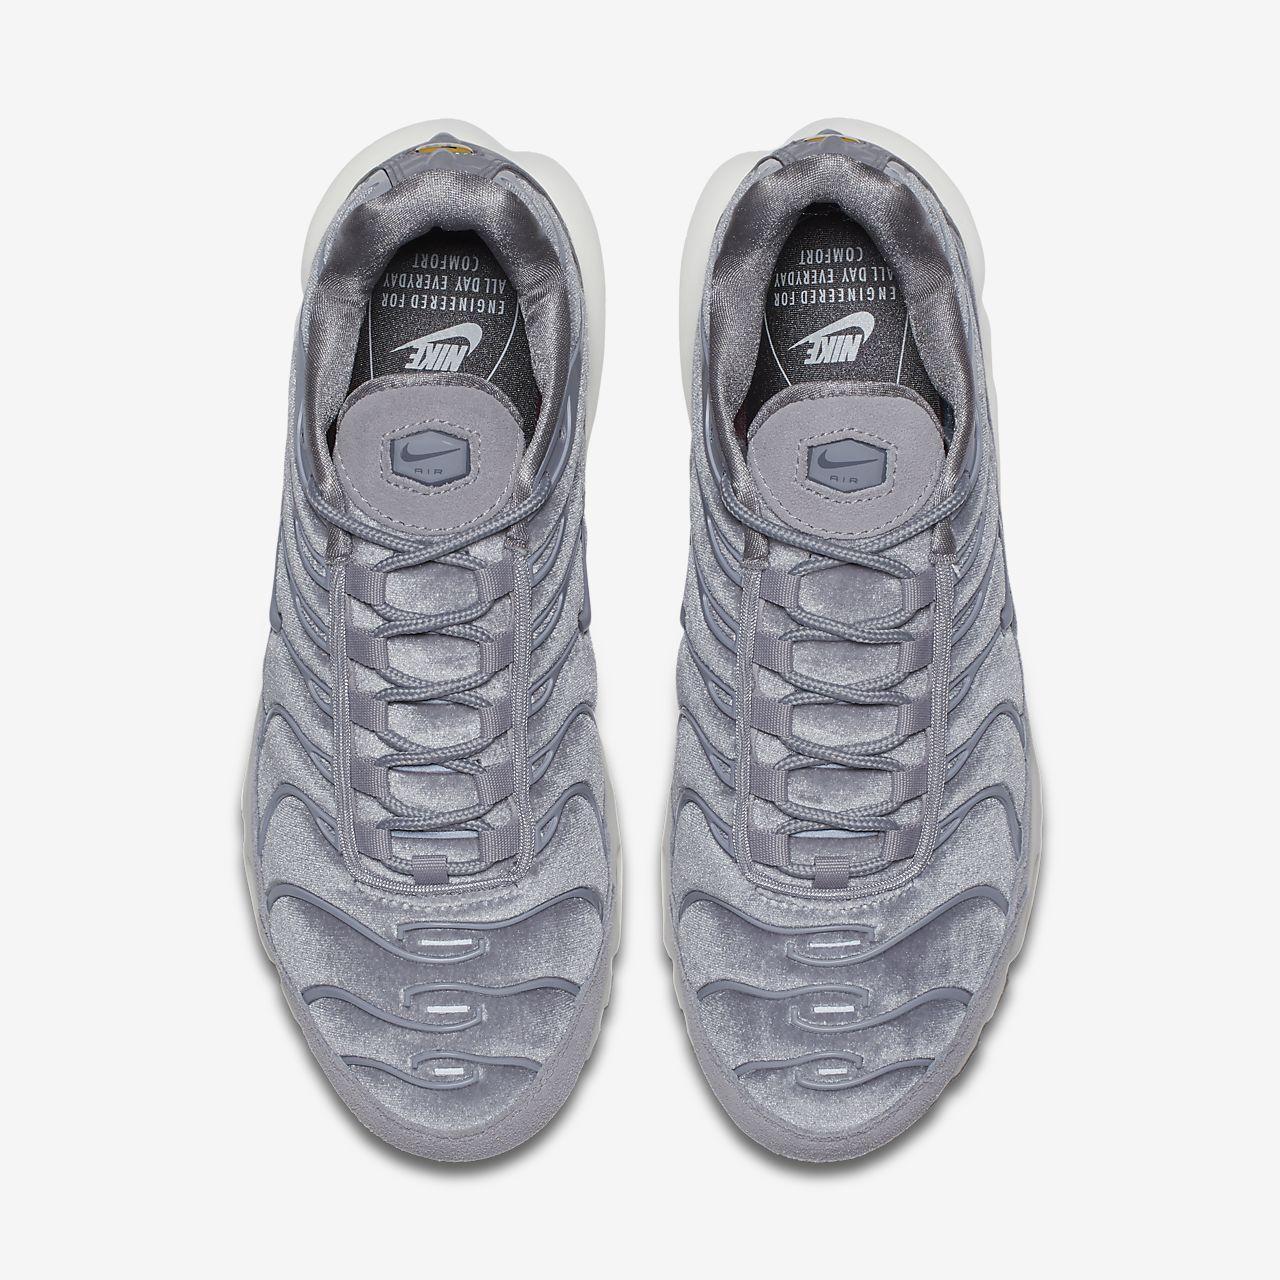 Nike Air Max Plus LX Damenschuh - Grau seW9c